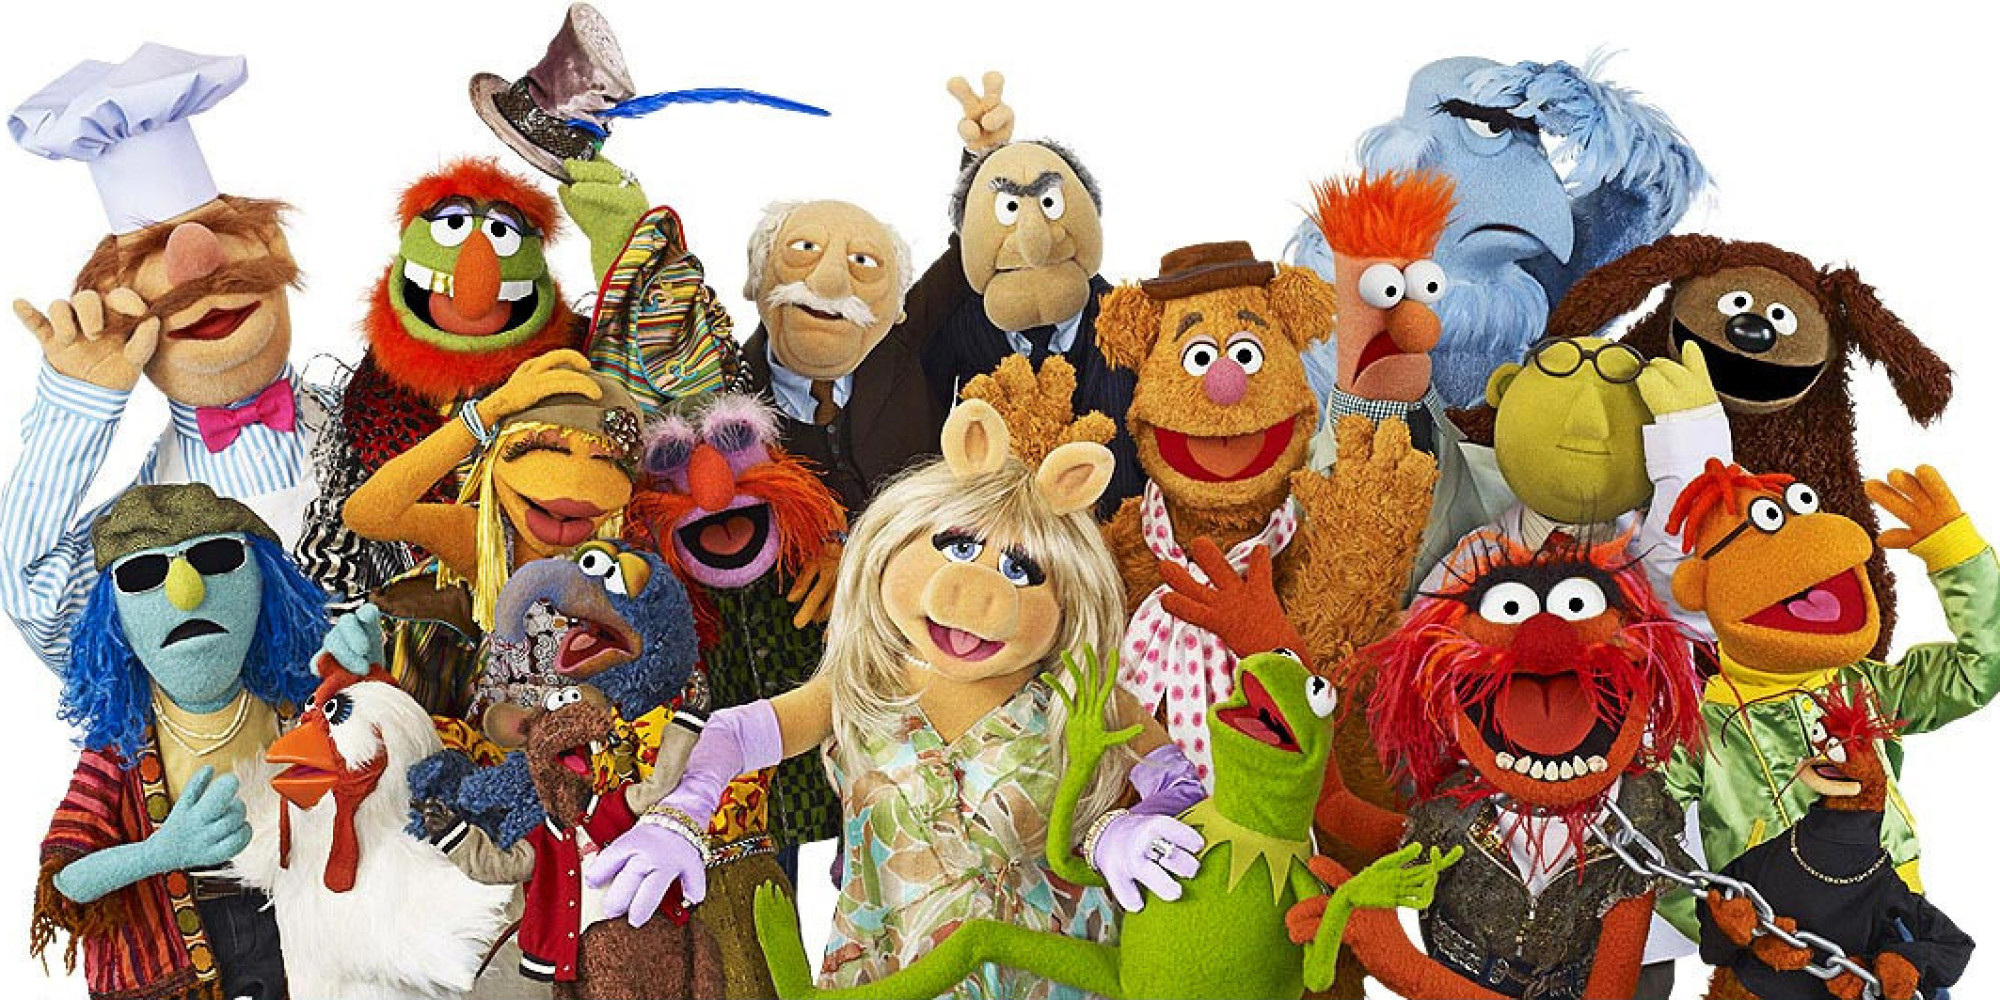 the muppets meets twin peaks is the strangest mashup